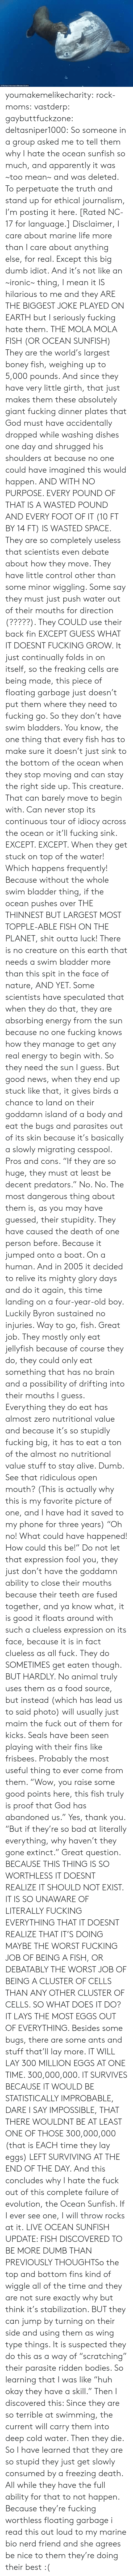 "cells: ORihad Herrma M  S youmakemelikecharity:  rock-moms:  vastderp:  gaybuttfuckzone:  deltasniper1000:  So someone in a group asked me to tell them why I hate the ocean sunfish so much, and apparently it was ~too mean~ and was deleted. To perpetuate the truth and stand up for ethical journalism, I'm posting it here. [Rated NC-17 for language.]  Disclaimer, I care about marine life more than I care about anything else, for real. Except this big dumb idiot. And it's not like an ~ironic~ thing, I mean it IS hilarious to me and they ARE THE BIGGEST JOKE PLAYED ON EARTH but I seriously fucking hate them.  THE MOLA MOLA FISH (OR OCEAN SUNFISH)  They are the world's largest boney fish, weighing up to 5,000 pounds. And since they have very little girth, that just makes them these absolutely giant fucking dinner plates that God must have accidentally dropped while washing dishes one day and shrugged his shoulders at because no one could have imagined this would happen. AND WITH NO PURPOSE. EVERY POUND OF THAT IS A WASTED POUND AND EVERY FOOT OF IT (10 FT BY 14 FT) IS WASTED SPACE.  They are so completely useless that scientists even debate about how they move. They have little control other than some minor wiggling. Some say they must just push water out of their mouths for direction (?????). They COULD use their back fin EXCEPT GUESS WHAT IT DOESNT FUCKING GROW. It just continually folds in on itself, so the freaking cells are being made, this piece of floating garbage just doesn't put them where they need to fucking go.   So they don't have swim bladders. You know, the one thing that every fish has to make sure it doesn't just sink to the bottom of the ocean when they stop moving and can stay the right side up. This creature. That can barely move to begin with. Can never stop its continuous tour of idiocy across the ocean or it'll fucking sink. EXCEPT. EXCEPT. When they get stuck on top of the water! Which happens frequently! Because without the whole swim bladder thing, if the ocean pushes over THE THINNEST BUT LARGEST MOST TOPPLE-ABLE FISH ON THE PLANET, shit outta luck! There is no creature on this earth that needs a swim bladder more than this spit in the face of nature, AND YET. Some scientists have speculated that when they do that, they are absorbing energy from the sun because no one fucking knows how they manage to get any real energy to begin with. So they need the sun I guess. But good news, when they end up stuck like that, it gives birds a chance to land on their goddamn island of a body and eat the bugs and parasites out of its skin because it's basically a slowly migrating cesspool. Pros and cons.   ""If they are so huge, they must at least be decent predators."" No. No. The most dangerous thing about them is, as you may have guessed, their stupidity. They have caused the death of one person before. Because it jumped onto a boat. On a human. And in 2005 it decided to relive its mighty glory days and do it again, this time landing on a four-year-old boy. Luckily Byron sustained no injuries. Way to go, fish. Great job.  They mostly only eat jellyfish because of course they do, they could only eat something that has no brain and a possibility of drifting into their mouths I guess. Everything they do eat has almost zero nutritional value and because it's so stupidly fucking big, it has to eat a ton of the almost no nutritional value stuff to stay alive. Dumb. See that ridiculous open mouth? (This is actually why this is my favorite picture of one, and I have had it saved to my phone for three years) ""Oh no! What could have happened! How could this be!"" Do not let that expression fool you, they just don't have the goddamn ability to close their mouths because their teeth are fused together, and ya know what, it is good it floats around with such a clueless expression on its face, because it is in fact clueless as all fuck.  They do SOMETIMES get eaten though. BUT HARDLY. No animal truly uses them as a food source, but instead (which has lead us to said photo) will usually just maim the fuck out of them for kicks. Seals have been seen playing with their fins like frisbees. Probably the most useful thing to ever come from them.   ""Wow, you raise some good points here, this fish truly is proof that God has abandoned us."" Yes, thank you. ""But if they're so bad at literally everything, why haven't they gone extinct."" Great question.   BECAUSE THIS THING IS SO WORTHLESS IT DOESNT REALIZE IT SHOULD NOT EXIST. IT IS SO UNAWARE OF LITERALLY FUCKING EVERYTHING THAT IT DOESNT REALIZE THAT IT'S DOING MAYBE THE WORST FUCKING JOB OF BEING A FISH, OR DEBATABLY THE WORST JOB OF BEING A CLUSTER OF CELLS THAN ANY OTHER CLUSTER OF CELLS. SO WHAT DOES IT DO? IT LAYS THE MOST EGGS OUT OF EVERYTHING. Besides some bugs, there are some ants and stuff that'll lay more. IT WILL LAY 300 MILLION EGGS AT ONE TIME. 300,000,000. IT SURVIVES BECAUSE IT WOULD BE STATISTICALLY IMPROBABLE, DARE I SAY IMPOSSIBLE, THAT THERE WOULDNT BE AT LEAST ONE OF THOSE 300,000,000 (that is EACH time they lay eggs) LEFT SURVIVING AT THE END OF THE DAY.   And this concludes why I hate the fuck out of this complete failure of evolution, the Ocean Sunfish. If I ever see one, I will throw rocks at it.   LIVE OCEAN SUNFISH UPDATE: FISH DISCOVERED TO BE MORE DUMB THAN PREVIOUSLY THOUGHTSo  the top and bottom fins kind of wiggle all of the time and they are not  sure exactly why but think it's stabilization. BUT they can jump by  turning on their side and using them as  wing type things. It is suspected they do this as a way of ""scratching""  their parasite ridden bodies. So learning that I was like ""huh okay they  have a skill."" Then I discovered this: Since they  are so terrible at swimming, the current will carry them into deep cold  water. Then they die. So I have learned that they are so stupid they  just get slowly consumed by a freezing death. All while they have the  full ability for that to not happen. Because they're fucking worthless  floating garbage    i read this out loud to my marine bio nerd friend and she agrees   be nice to them they're doing their best :("